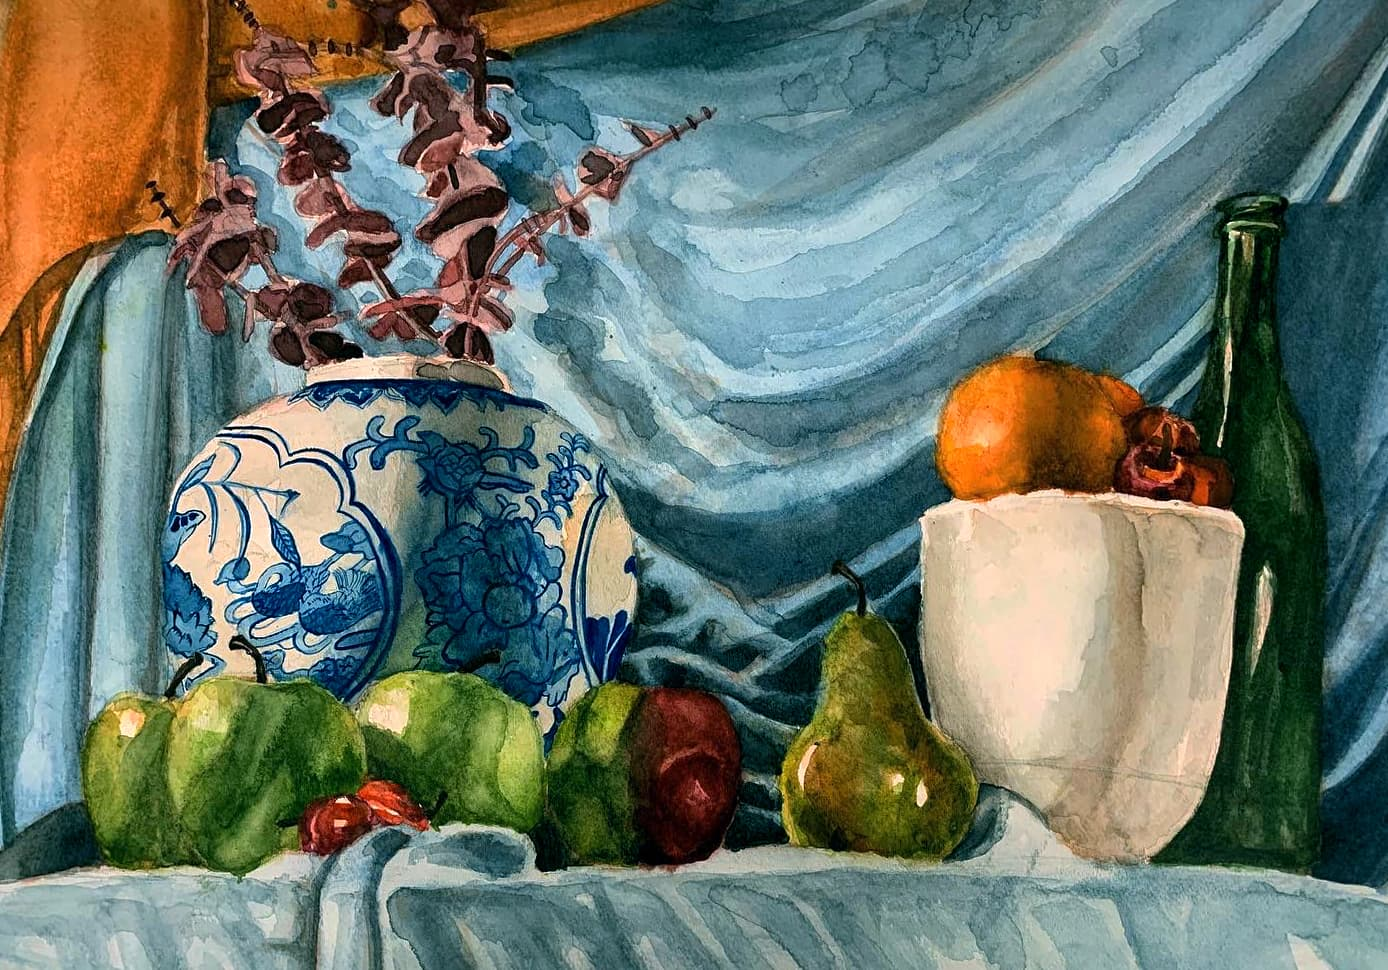 Still Life of a glass bottle, a vase, and some fruit